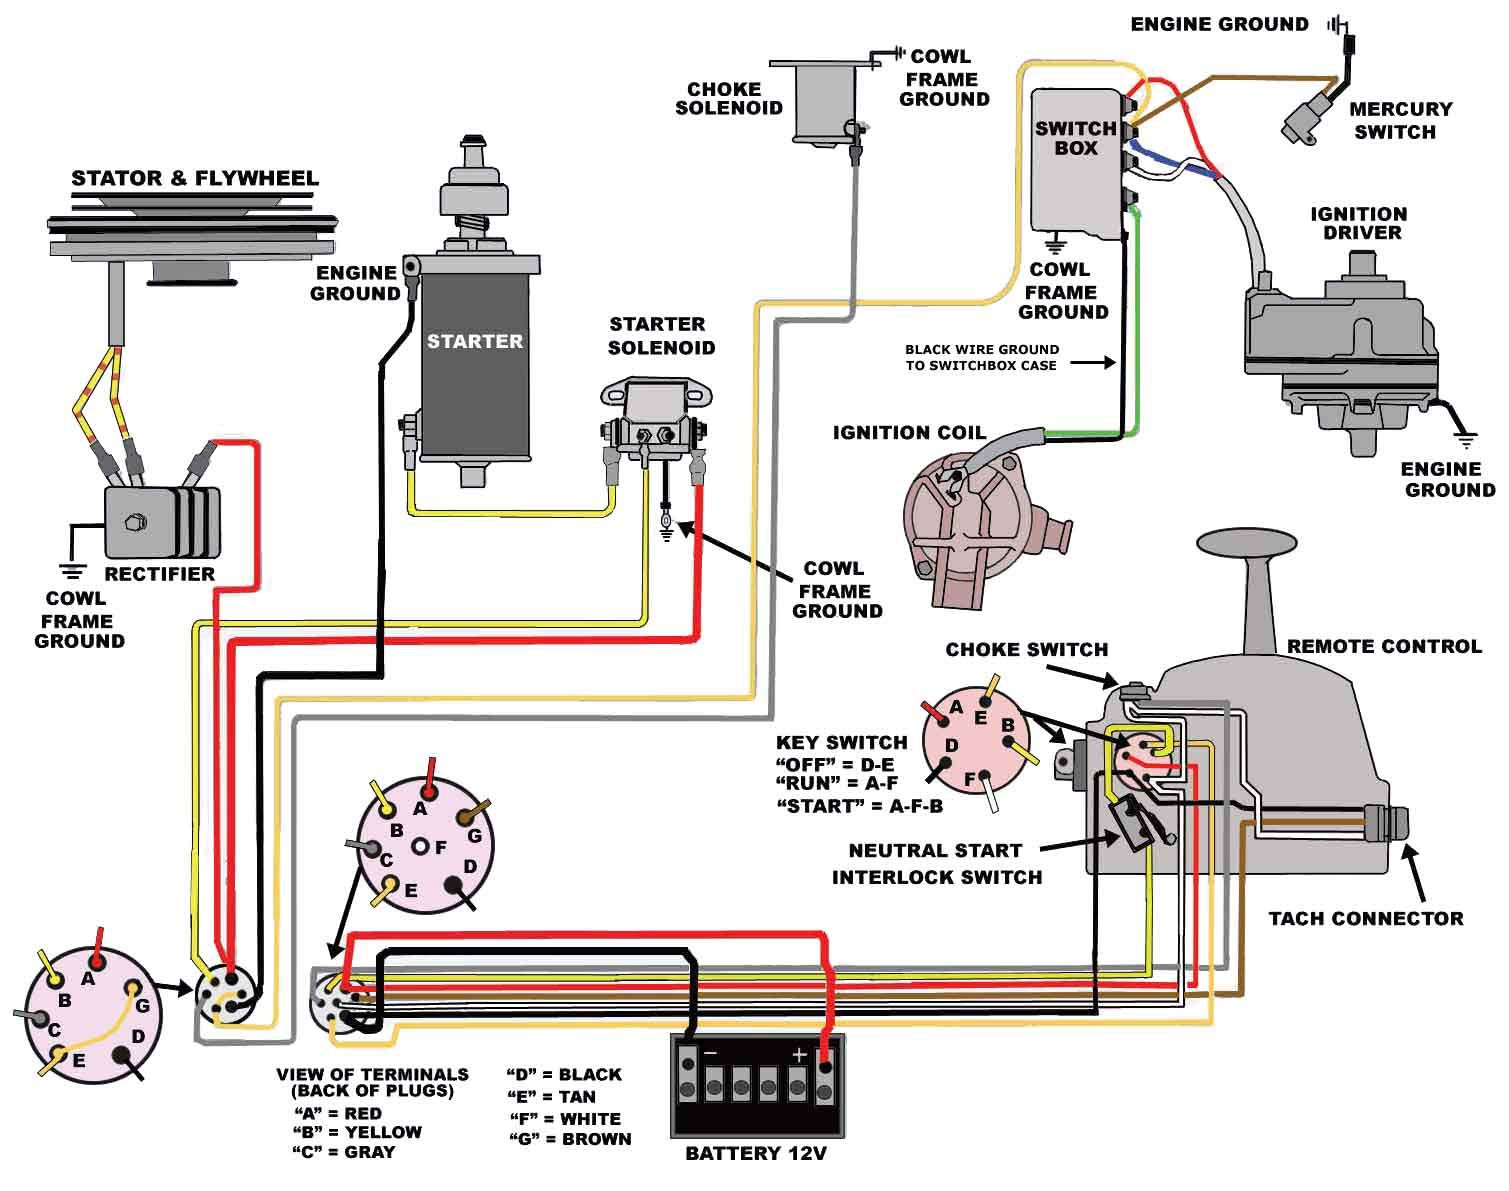 13cfb2d962bcd0c03103625817b7d51d mercury outboard wiring diagram diagram pinterest mercury mercury wiring harness diagram at bakdesigns.co